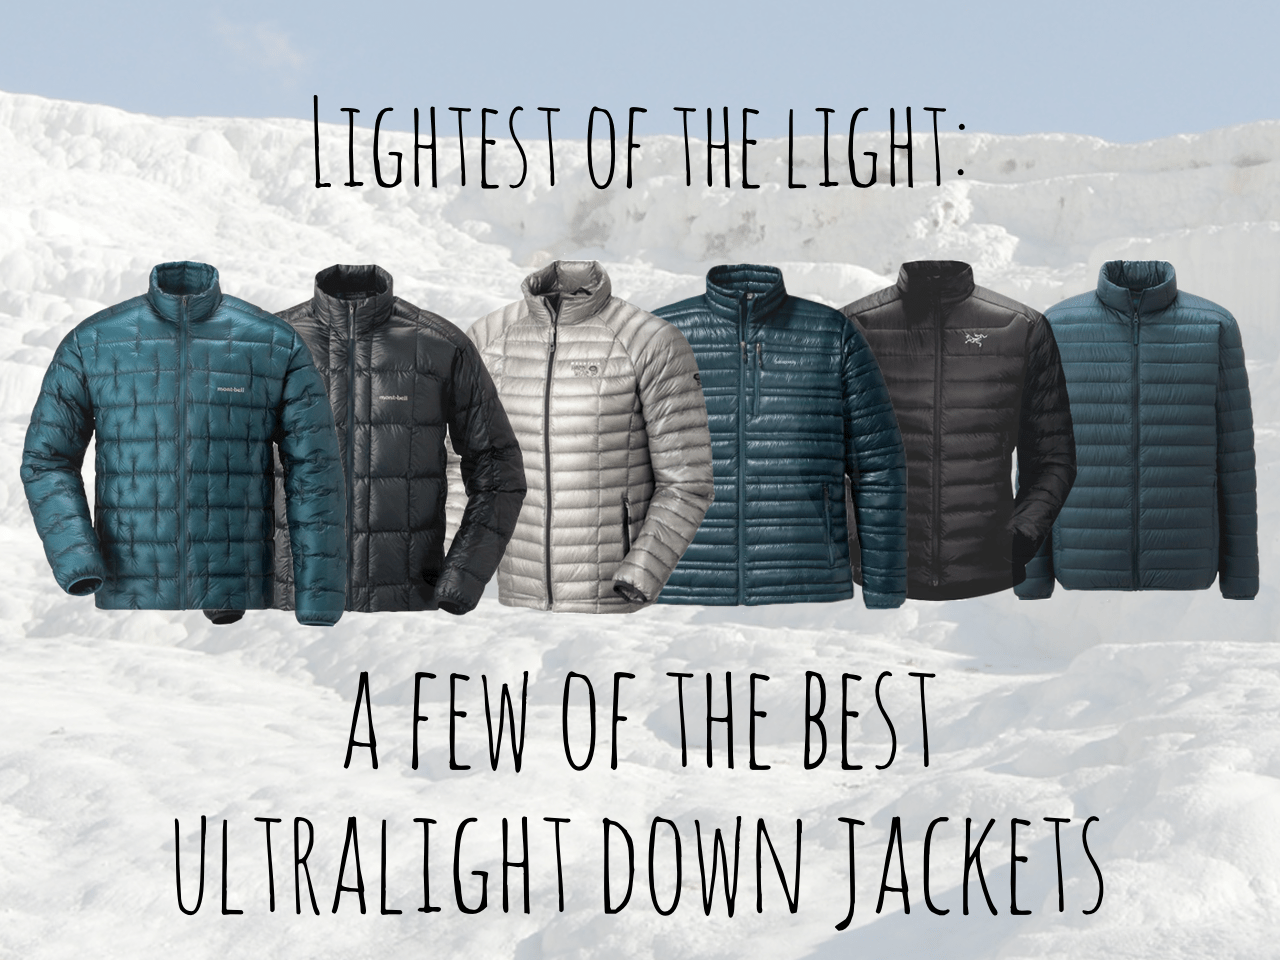 A few of the best ultralight down jackets – Snarky Nomad